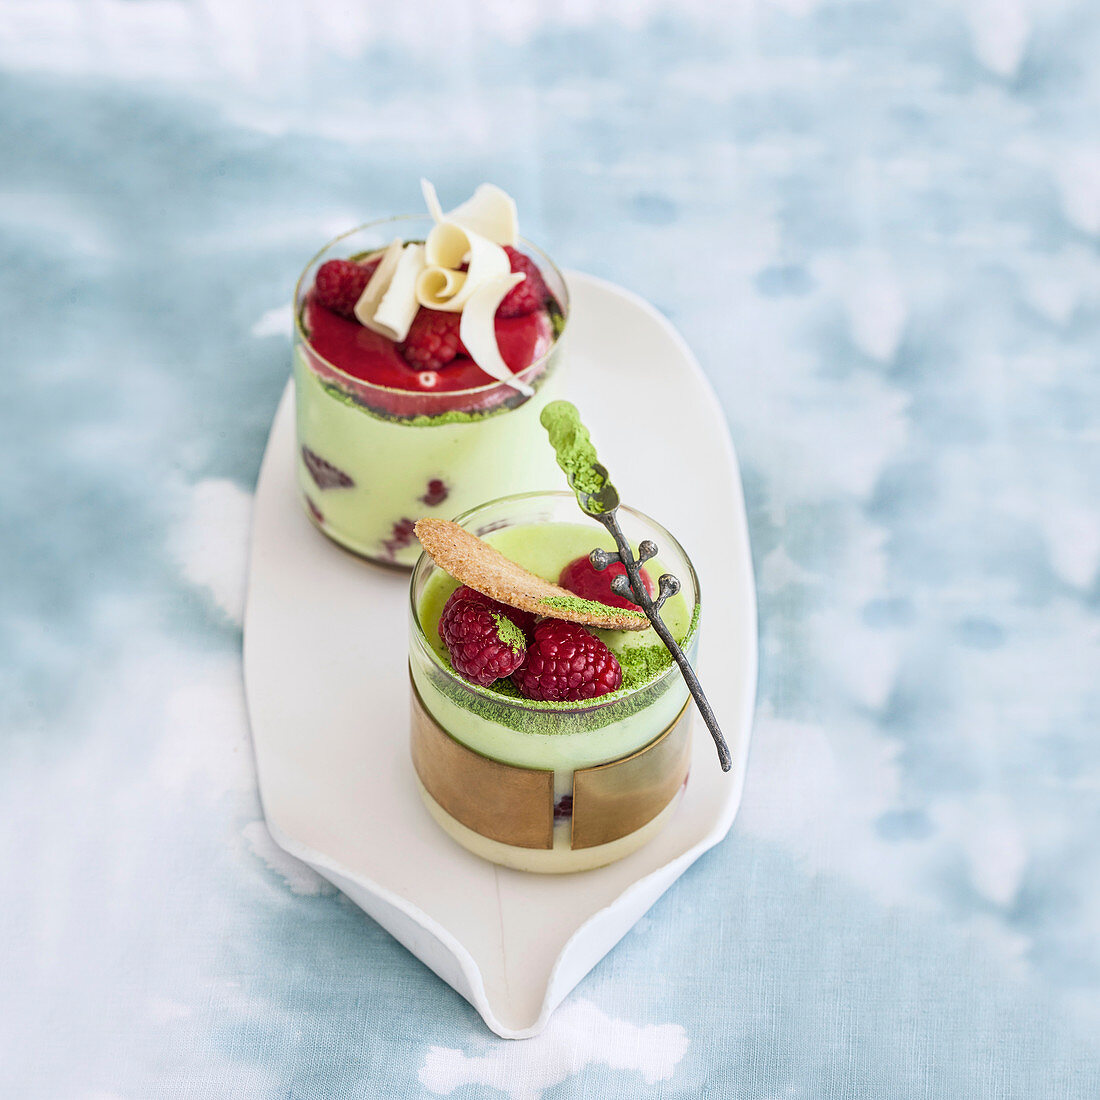 Matcha tea mousse with white chocolate and raspberries